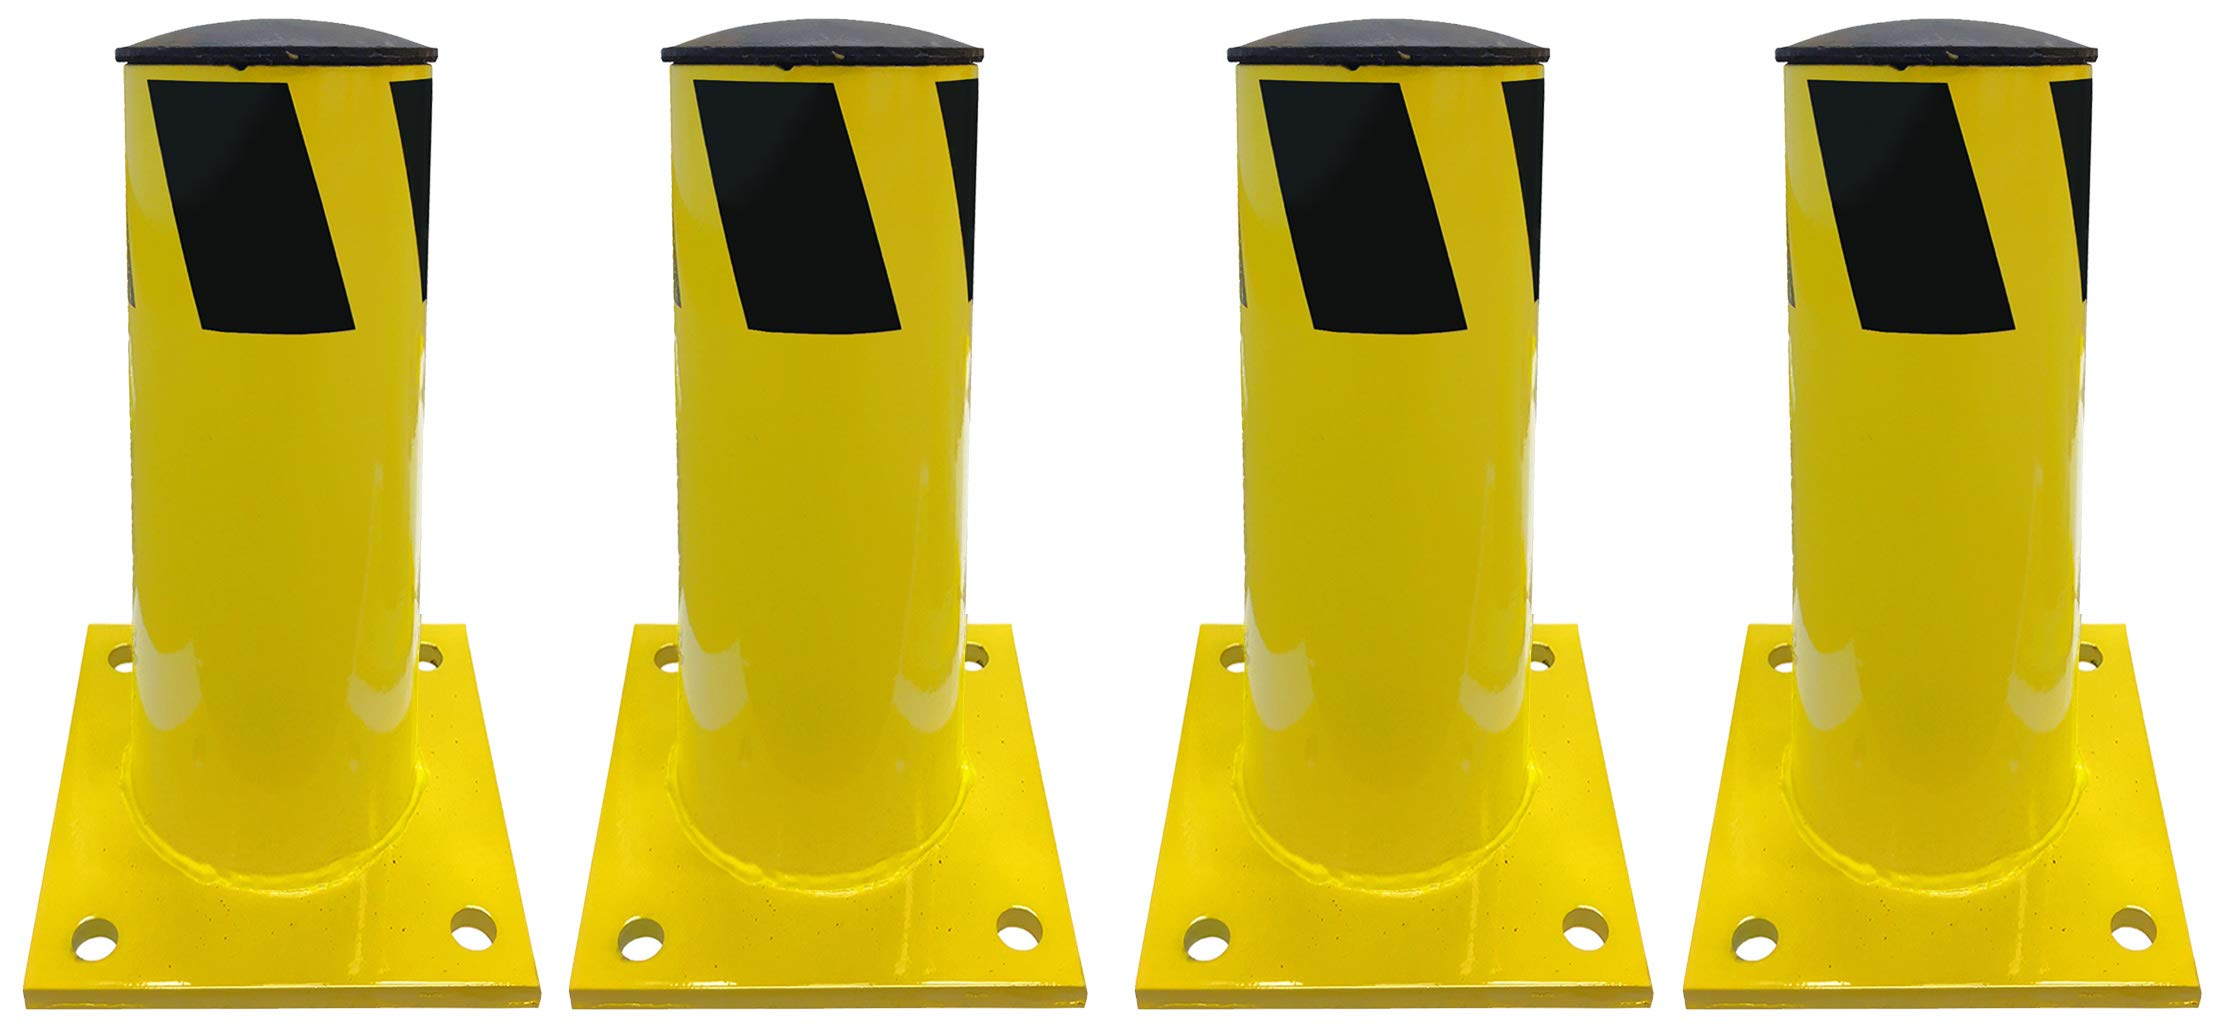 Electriduct 1 Foot Steel Pipe Safety Bollard Post Yellow/Black Stripe - Parking Lot Traffic Barrier (12'' Height - 4.5'' OD) - Pack of 4